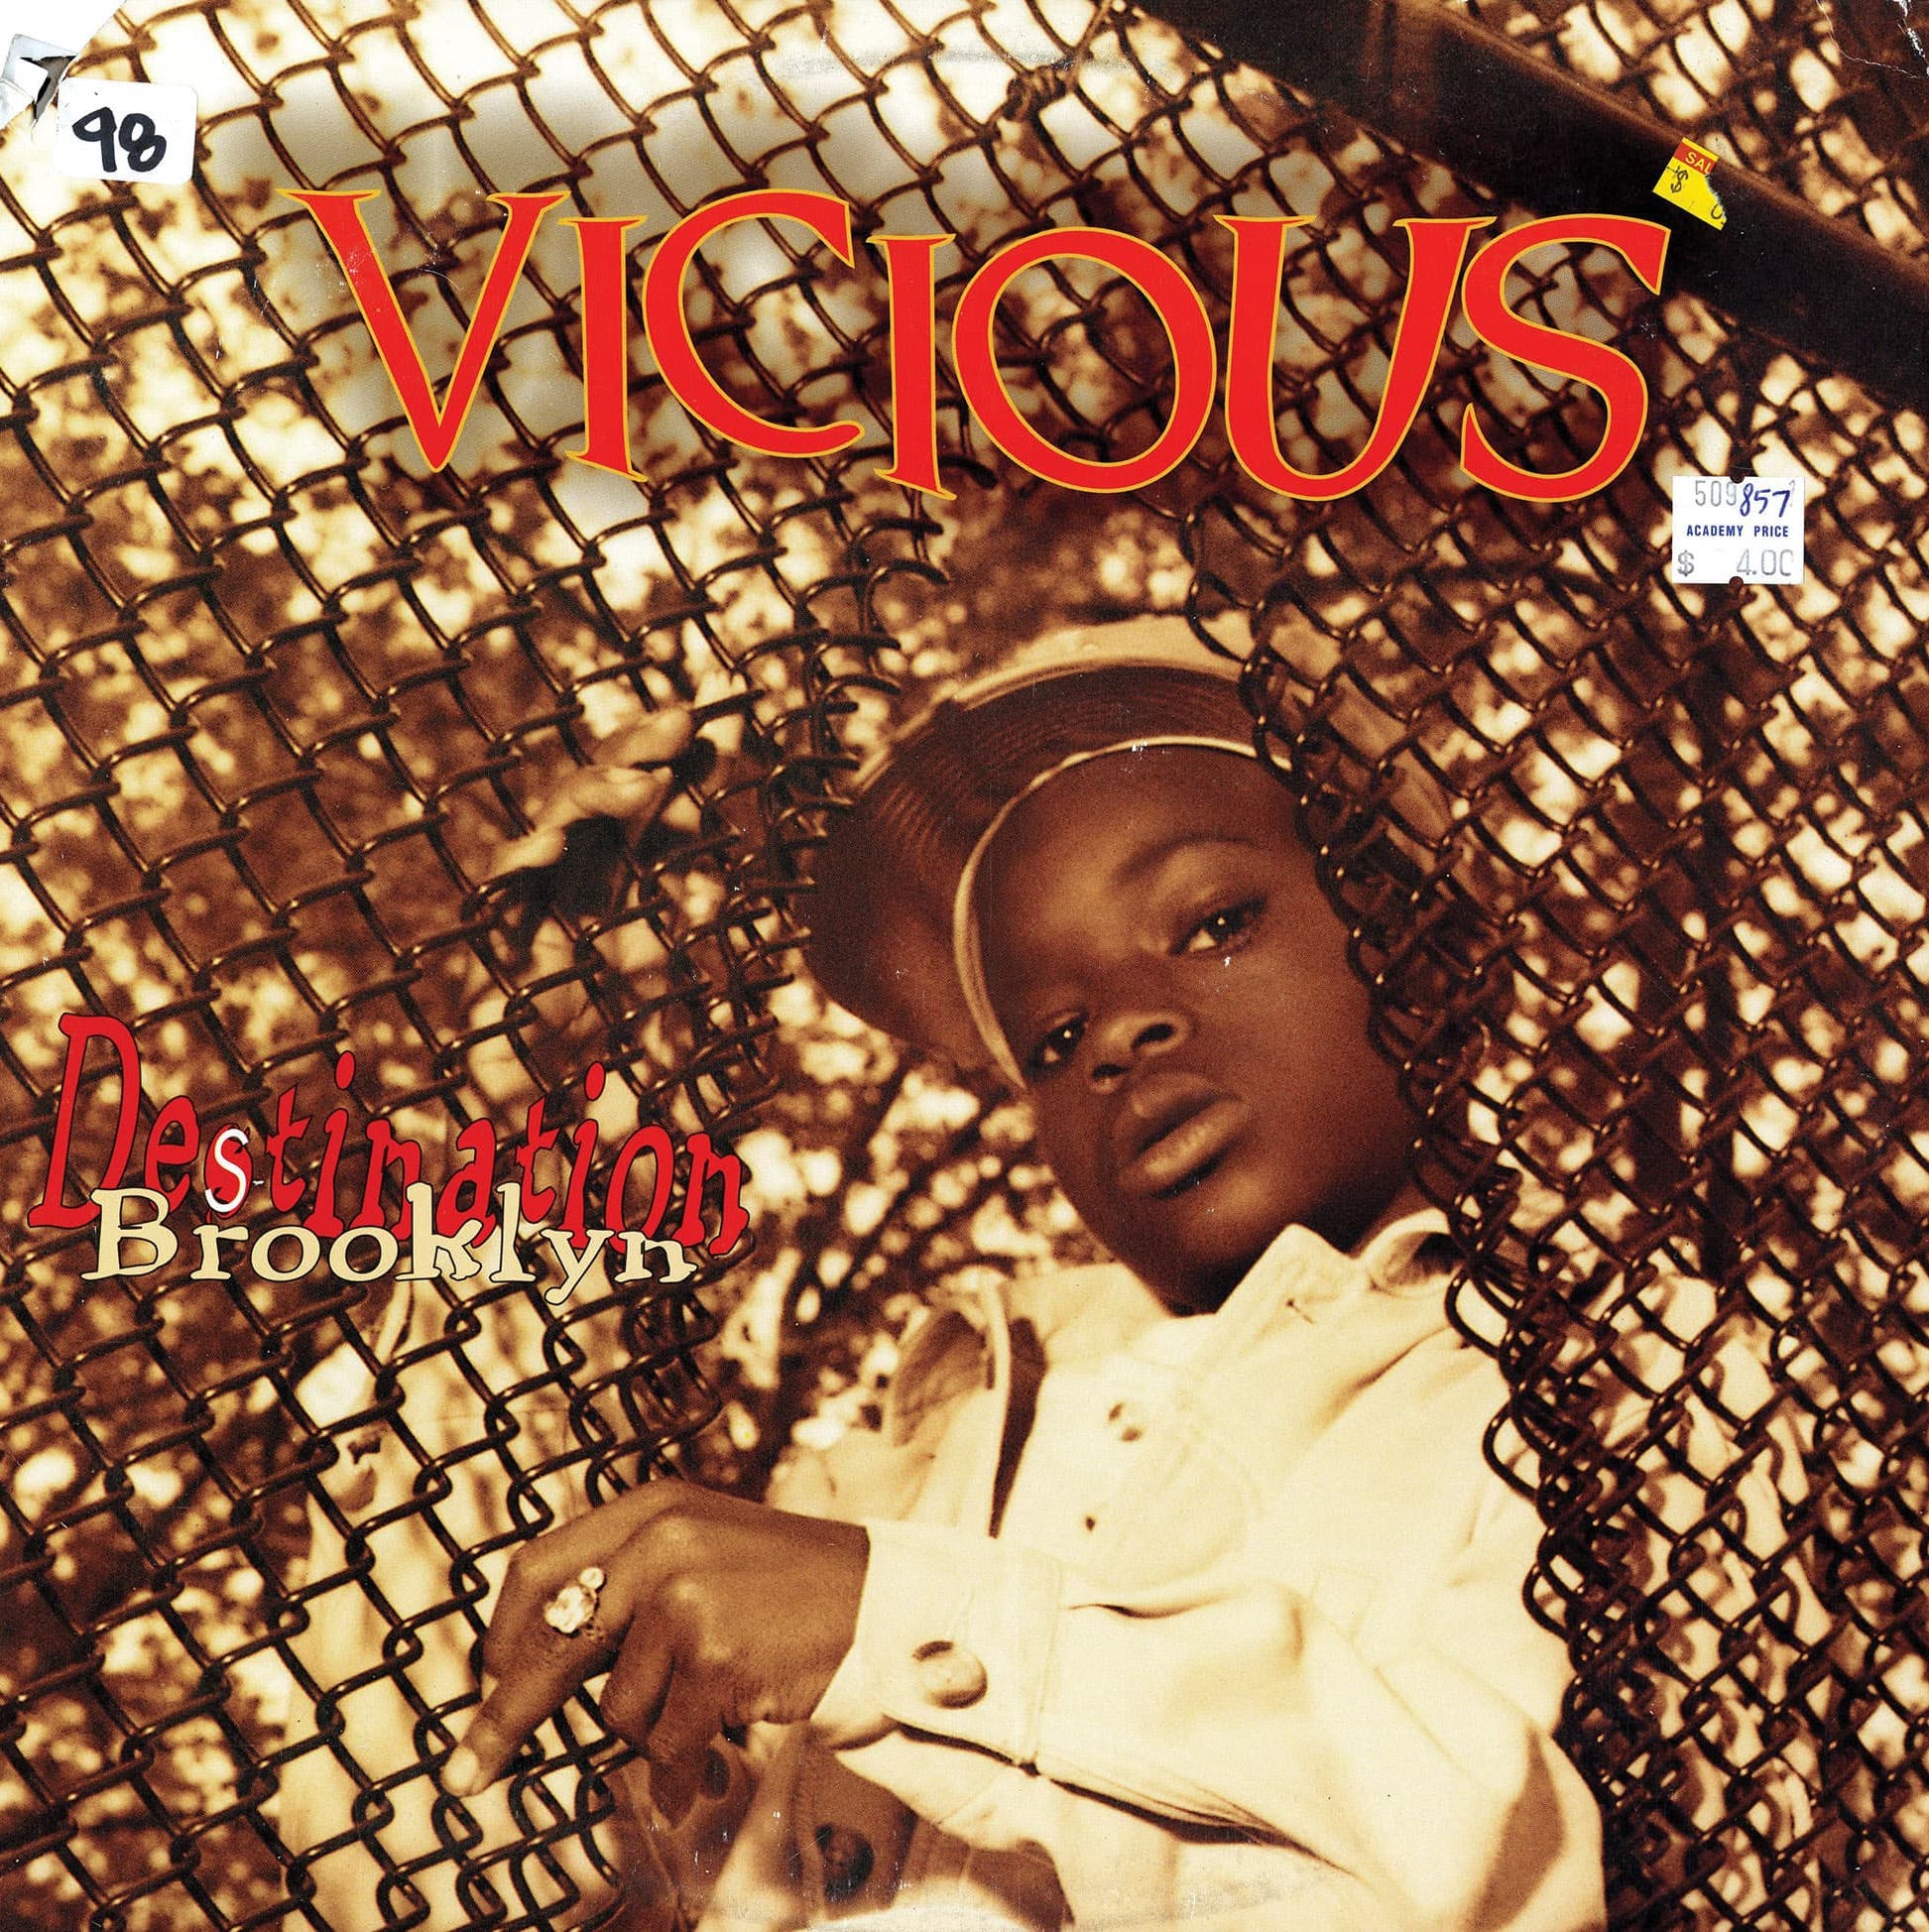 Vicious <i>Destination Brooklyn</i>